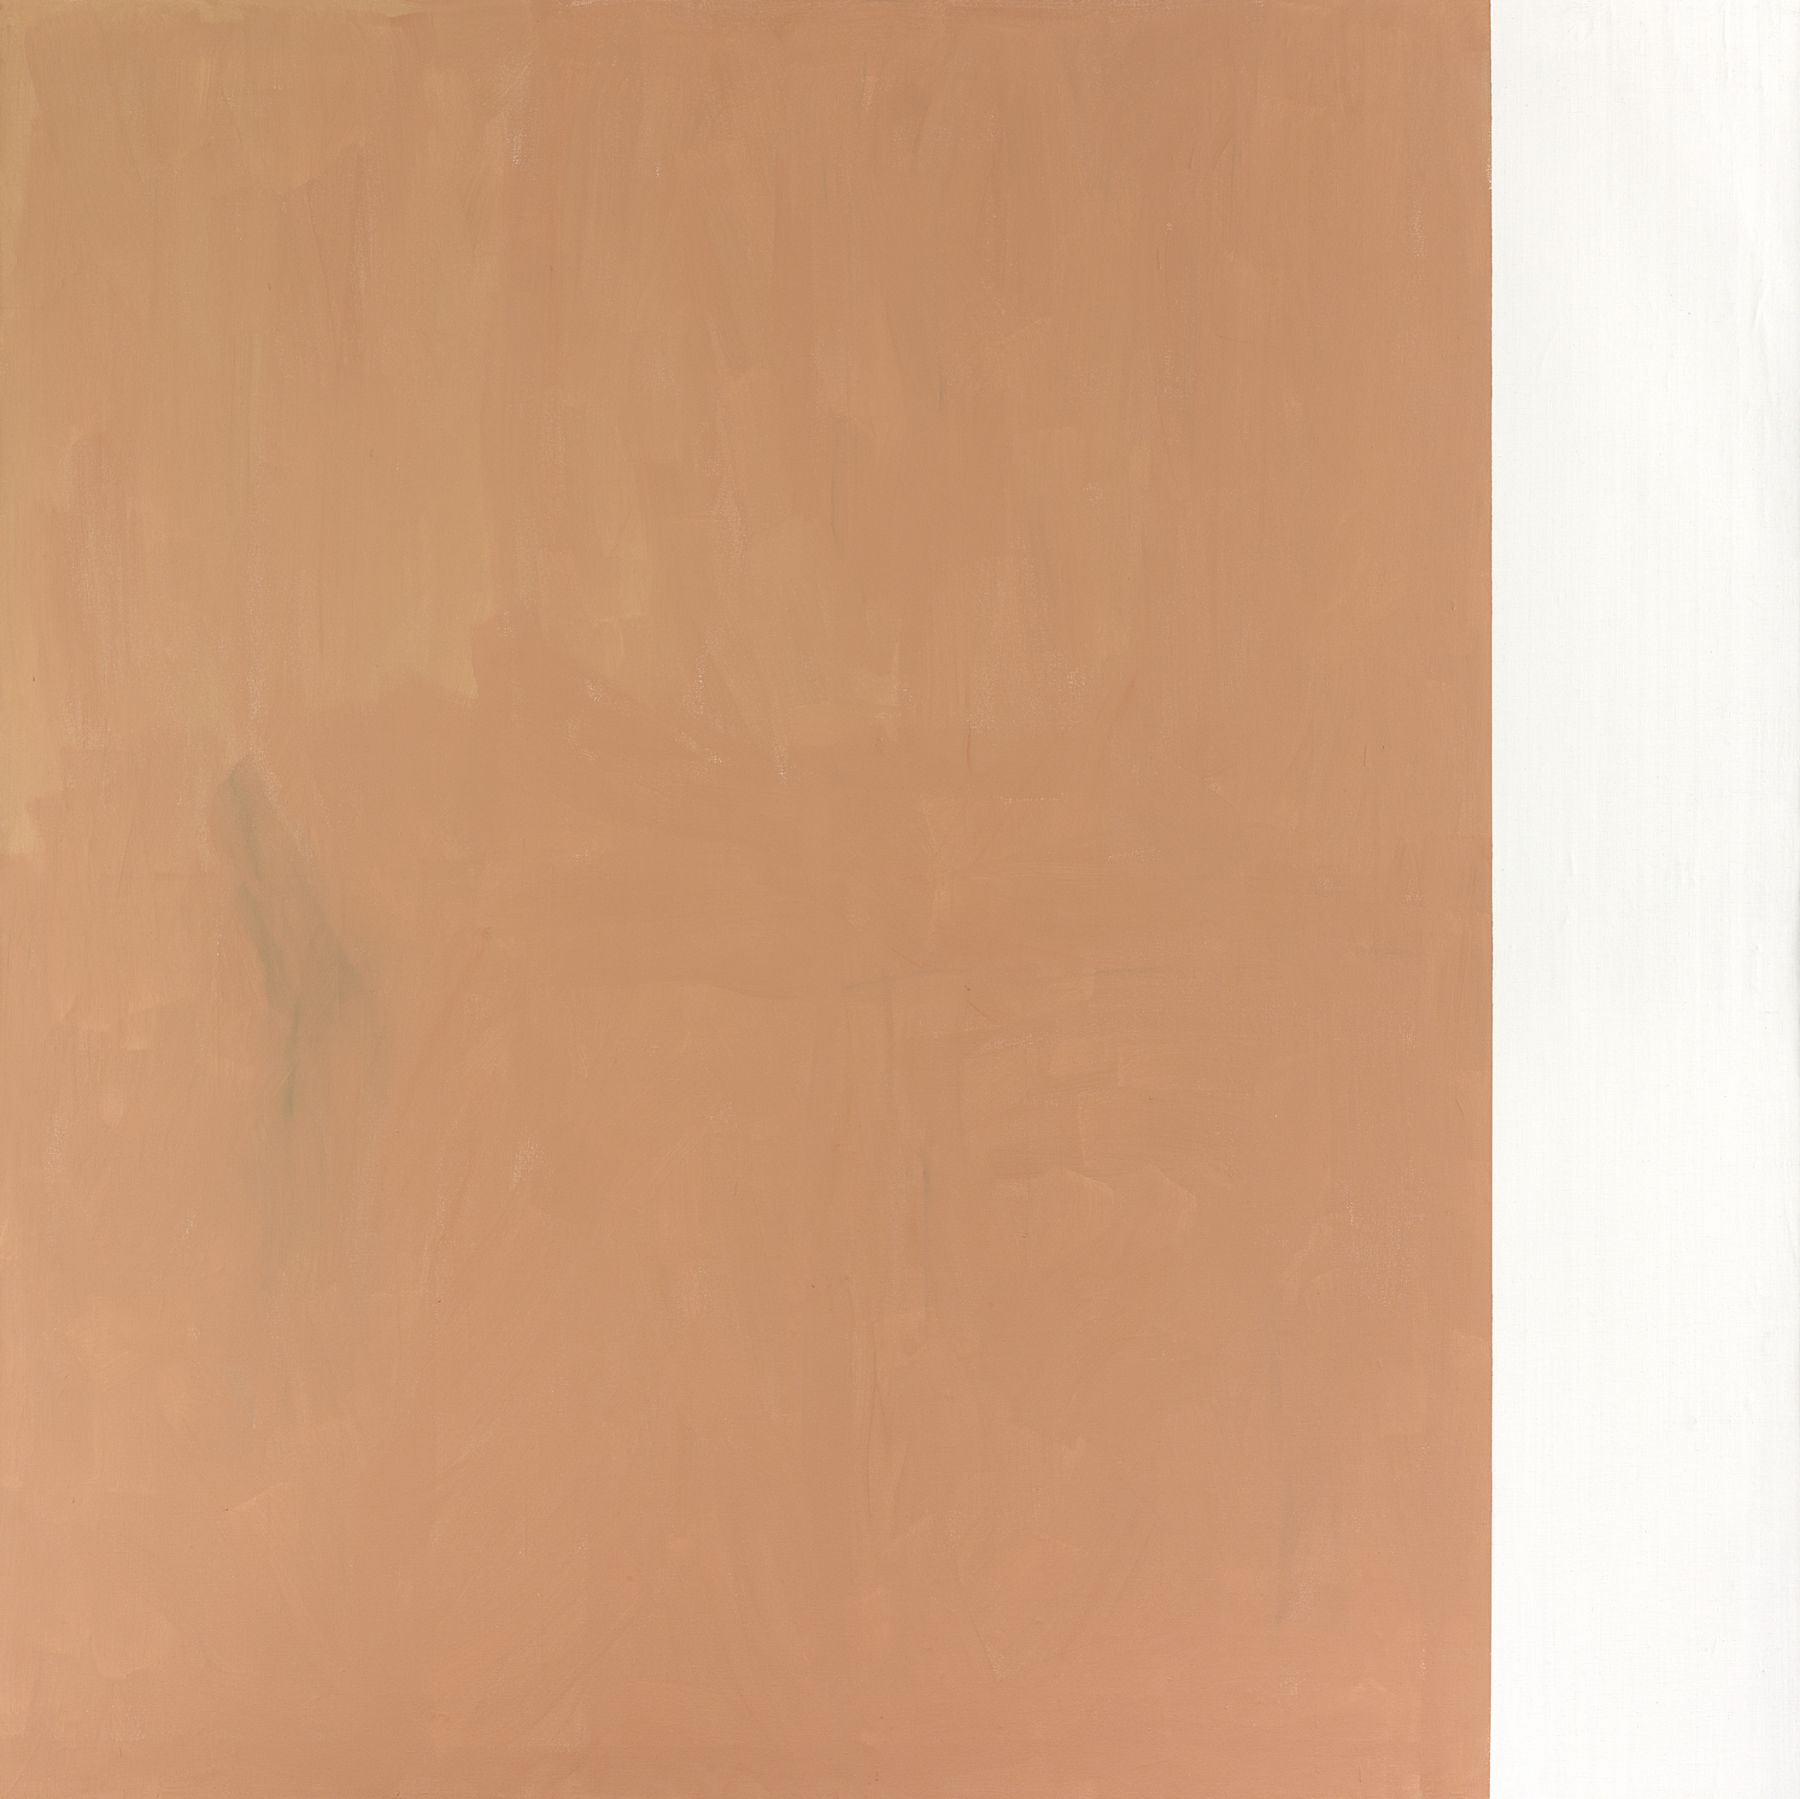 Untitled, 1991, Acrylic on canvas, 114 1/8 x 114 1/8 inches (290 x 290 cm)